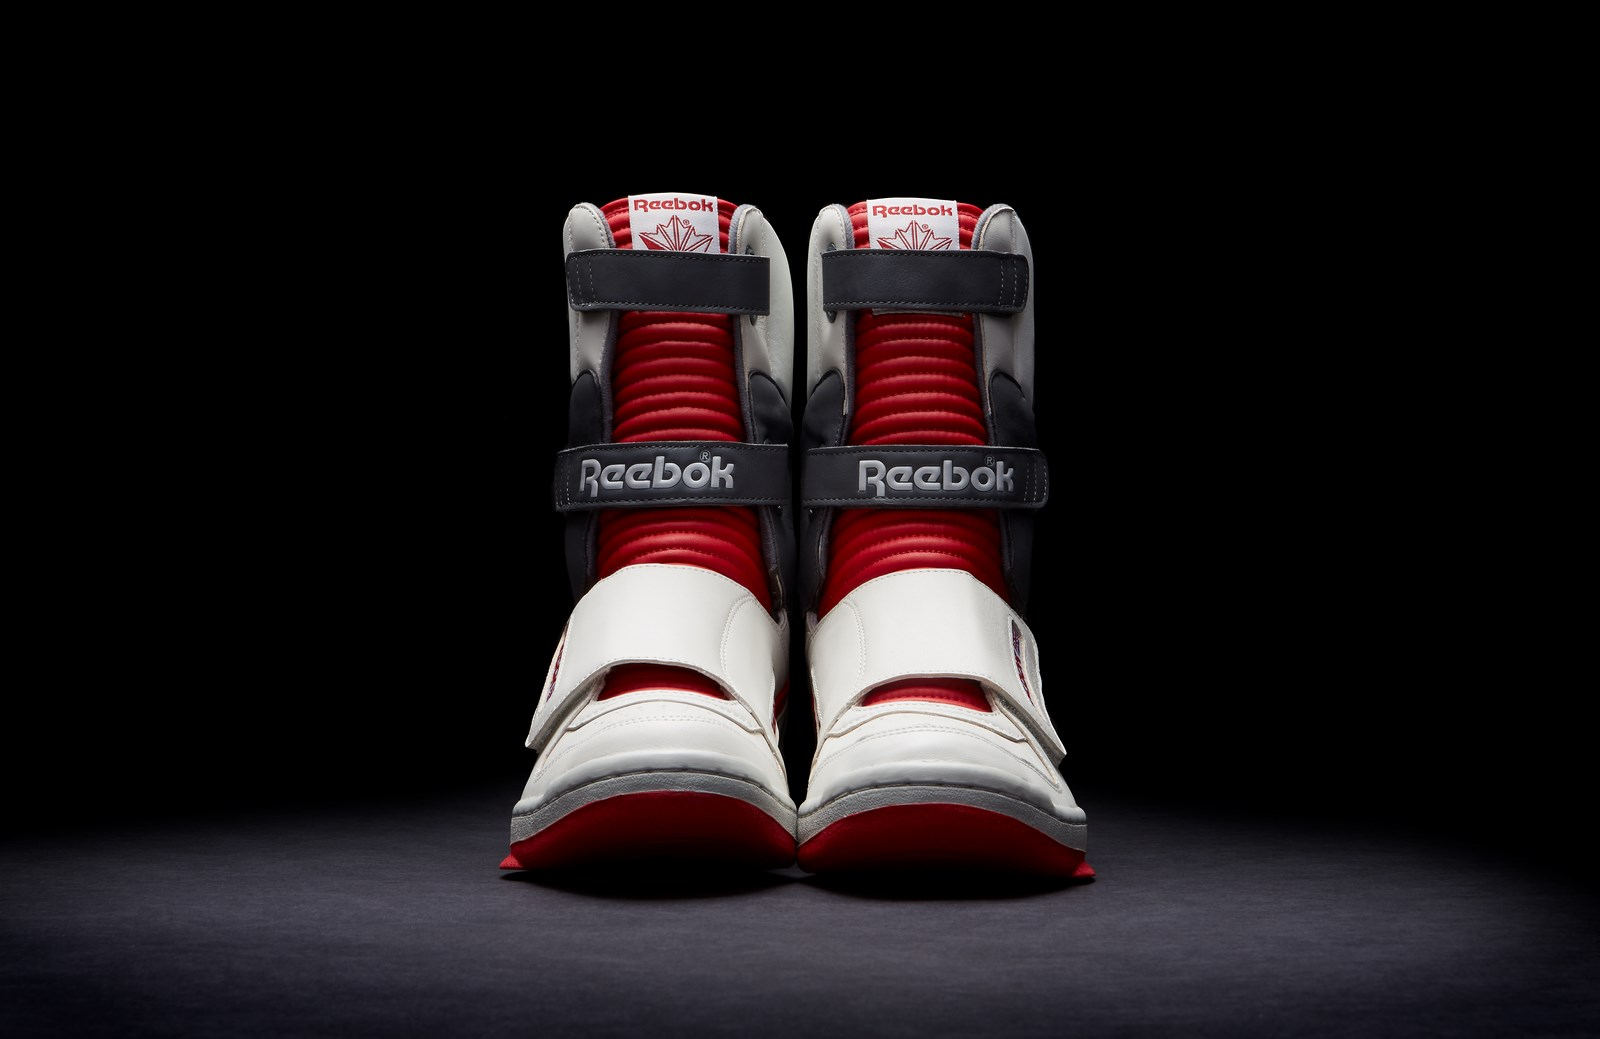 Reebok-Alien-Stomper, reebok-alien, aline-stomper, reebok-classic, #reebokclassic, reebok.fr, #reebokfr, this-is-classic, #thisisclassic, alienday, chaussures-alien, sneakers-alien, baskets-alien, reebok-Ellen-Ripley, Ellen-Ripley-sneakers, du-dessin-aux-podiums, dudessinauxpodiums